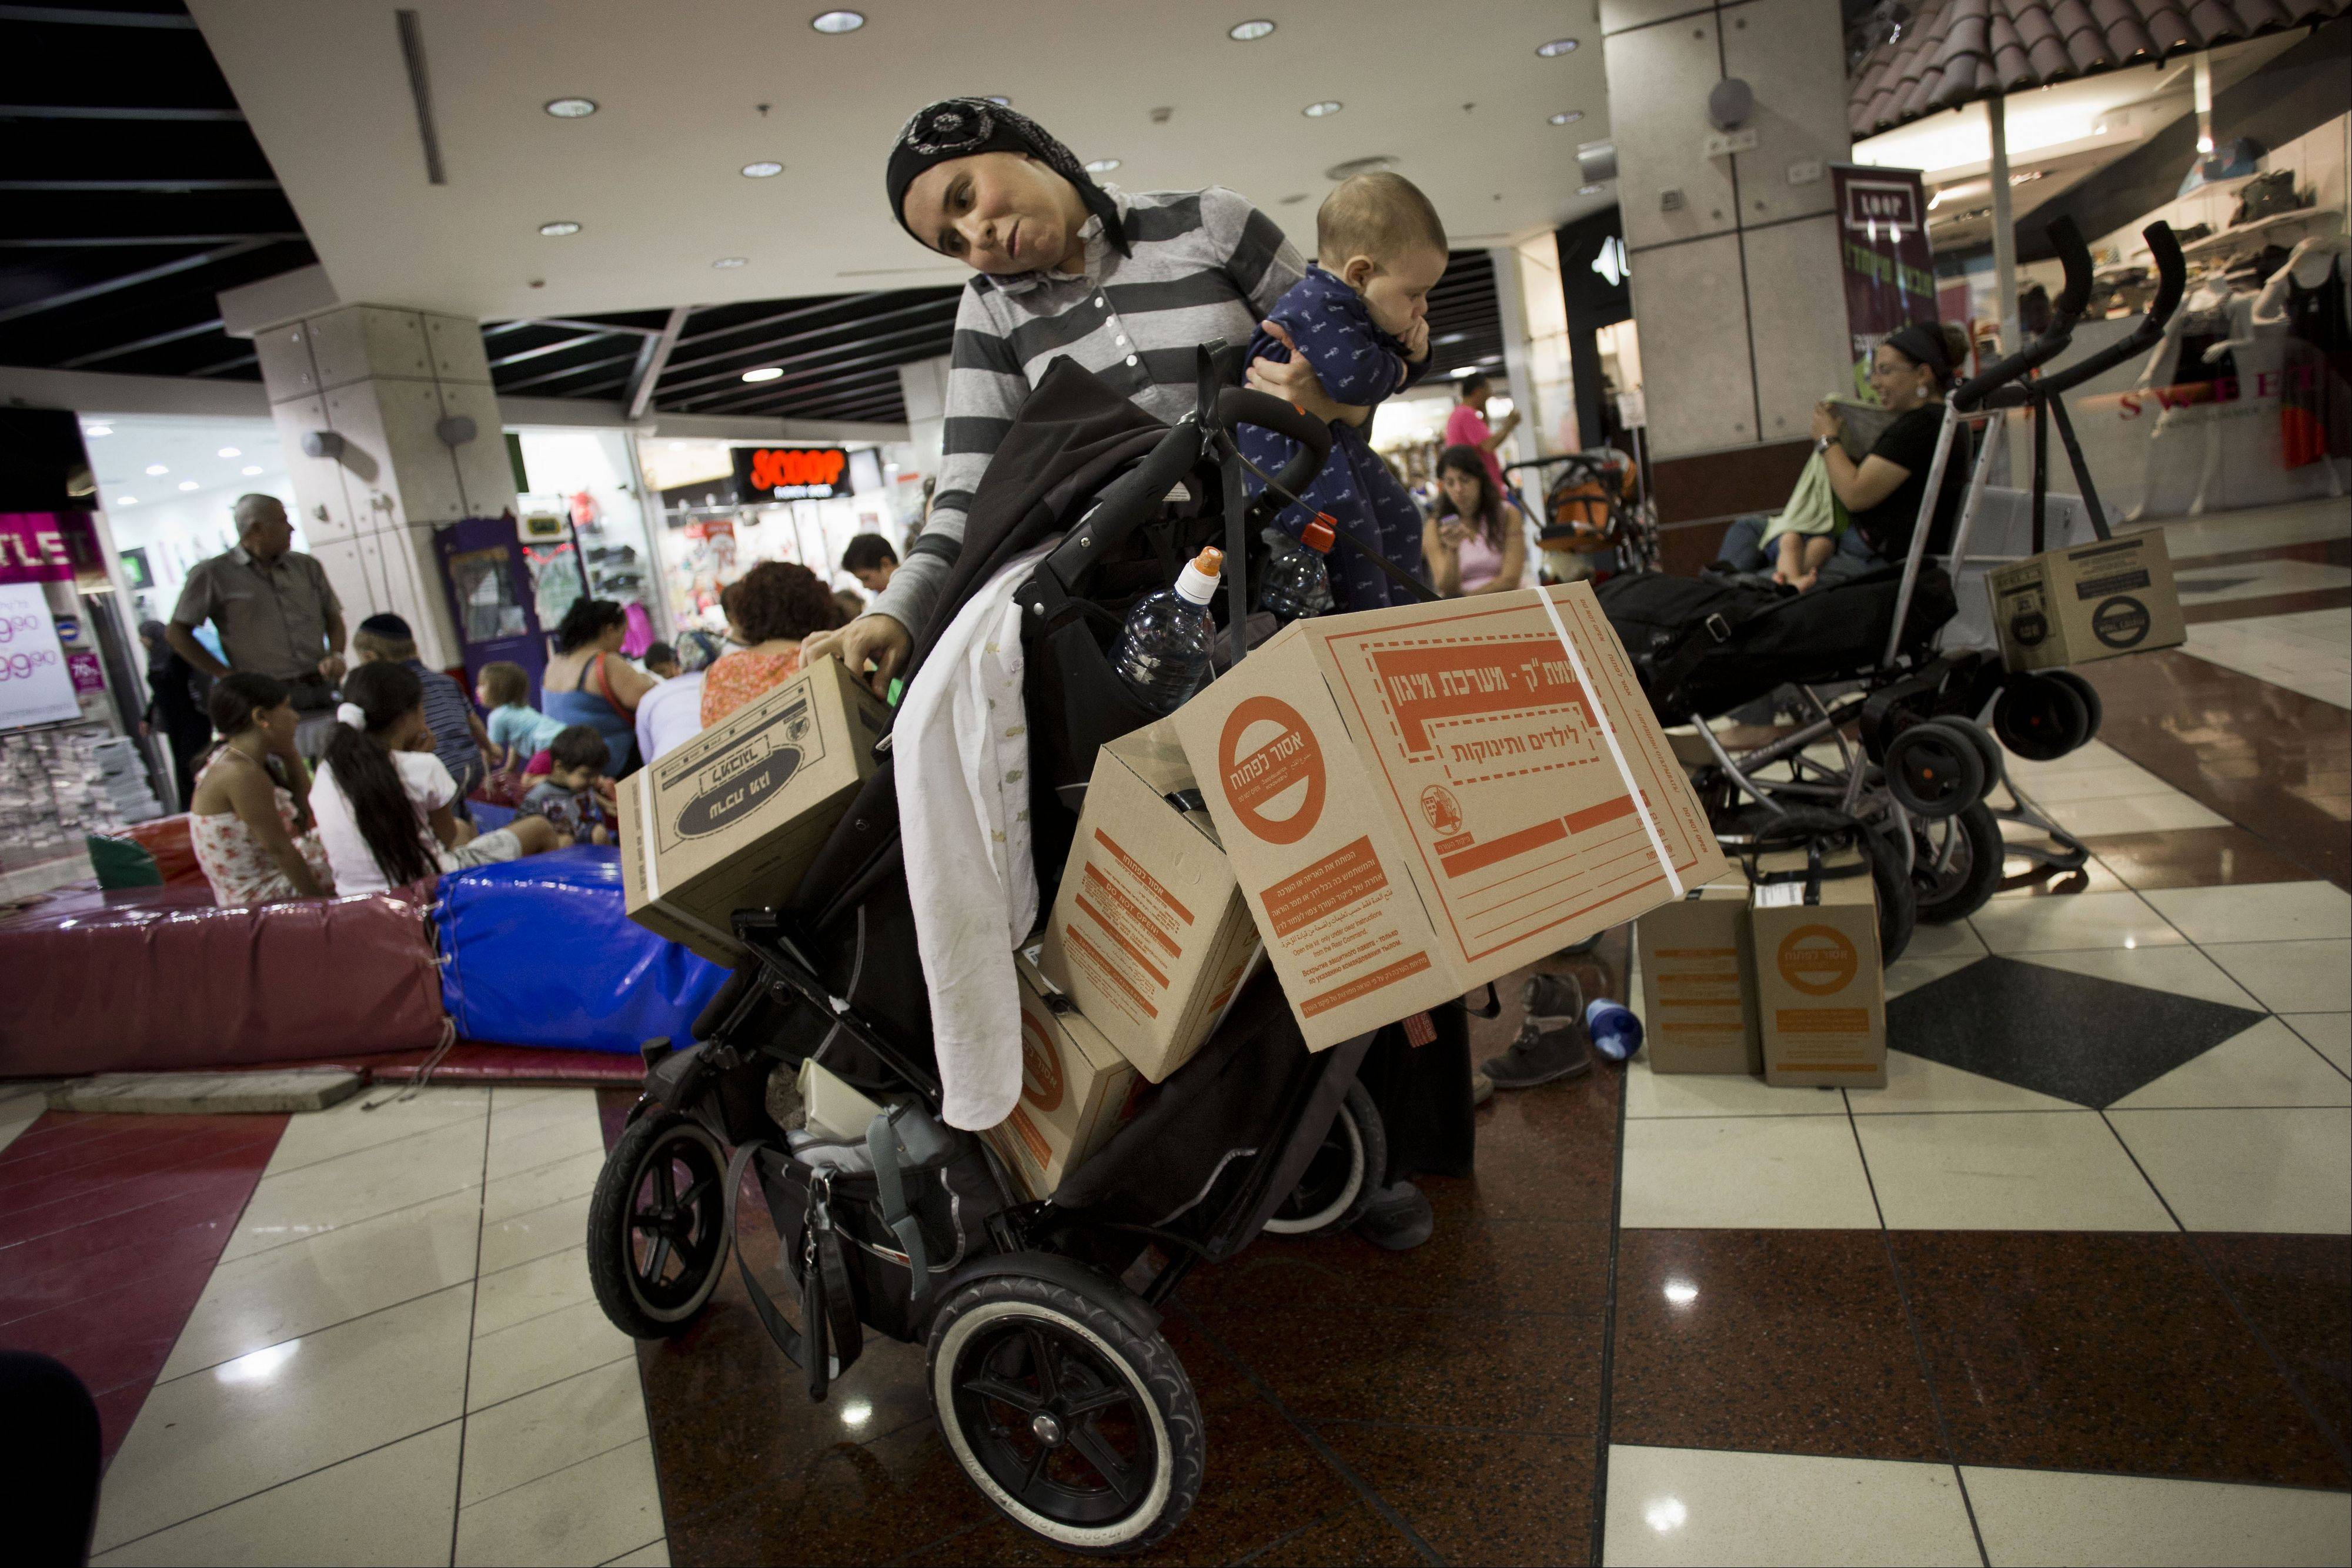 An Israeli woman talks on the phone Wednesday after collecting gas masks for her family in a shopping mall in Jerusalem.